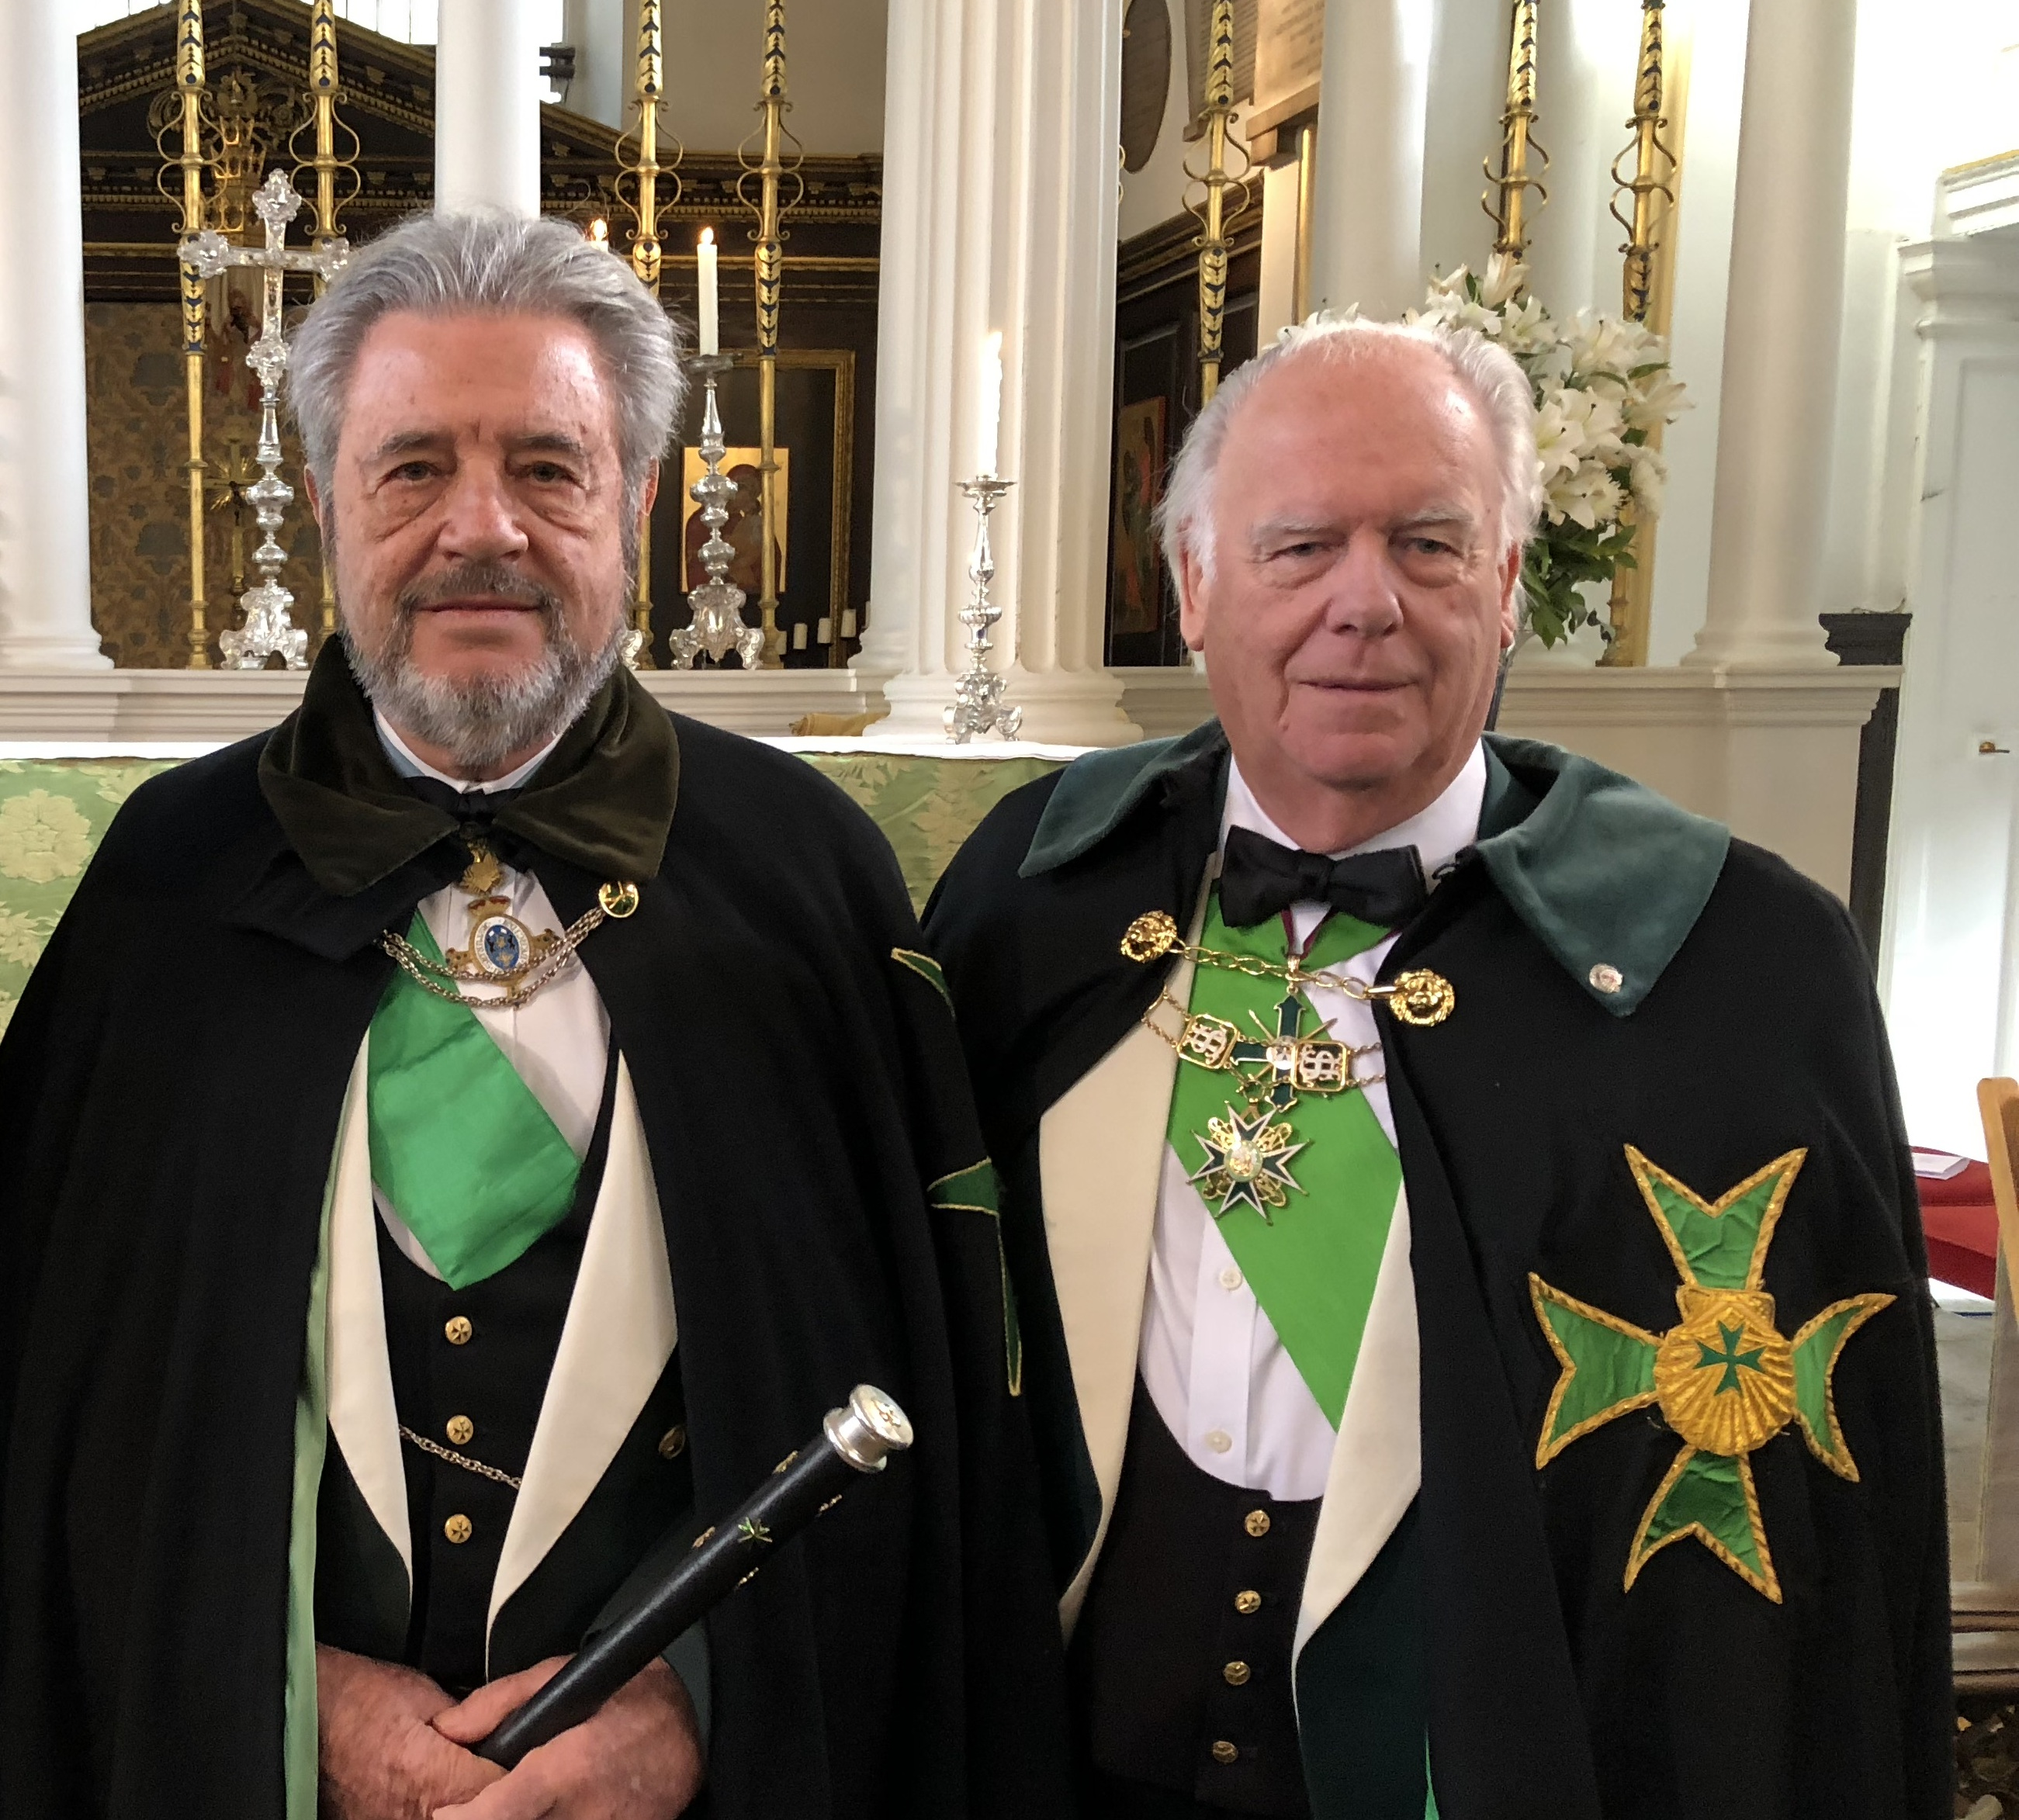 Grand Master Emeritus and Bailiff